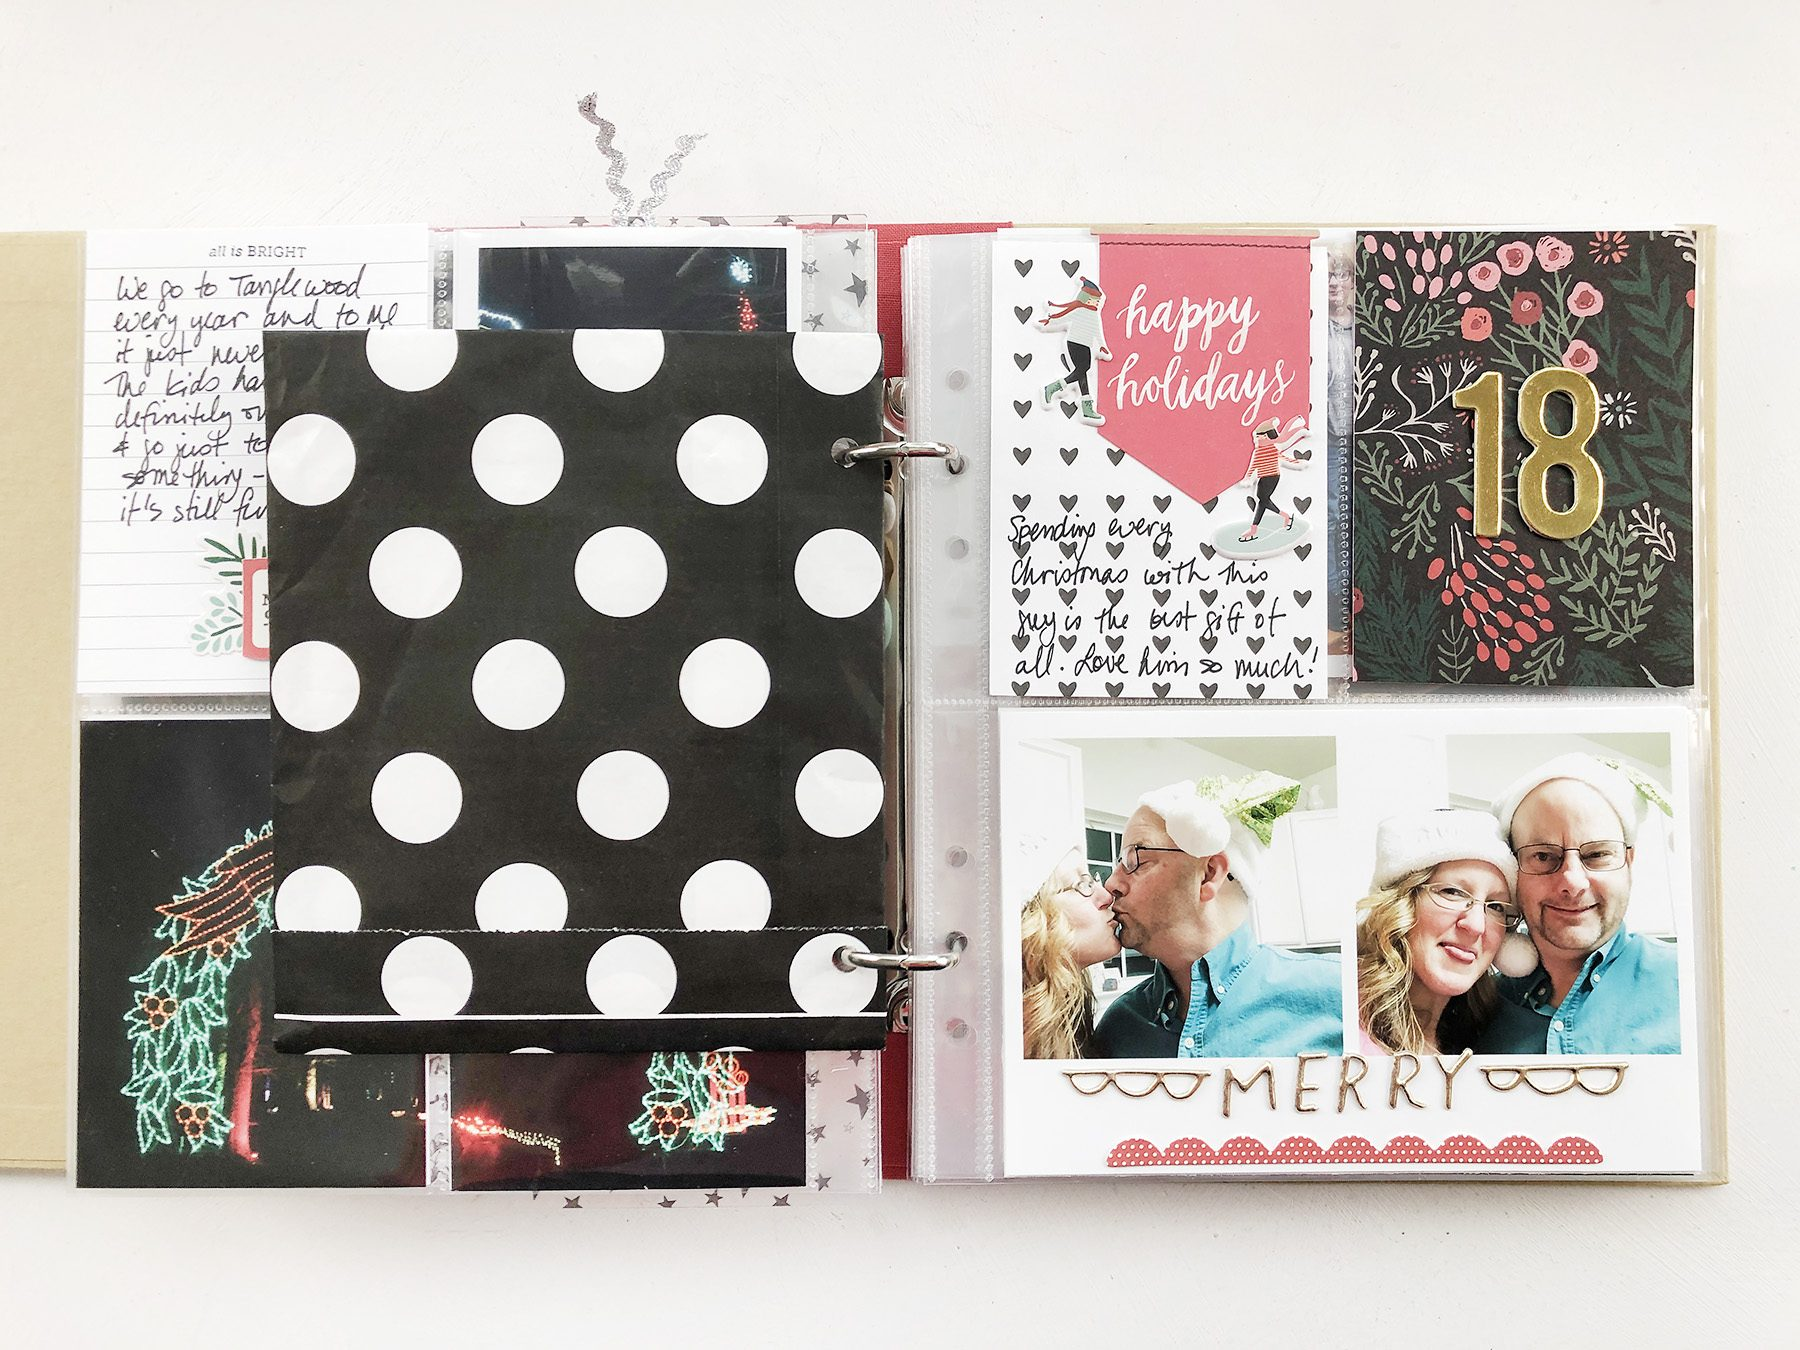 Larkindesign Scrappy Christmas In July | December Daily 2018 Days 16 Through 18!!!